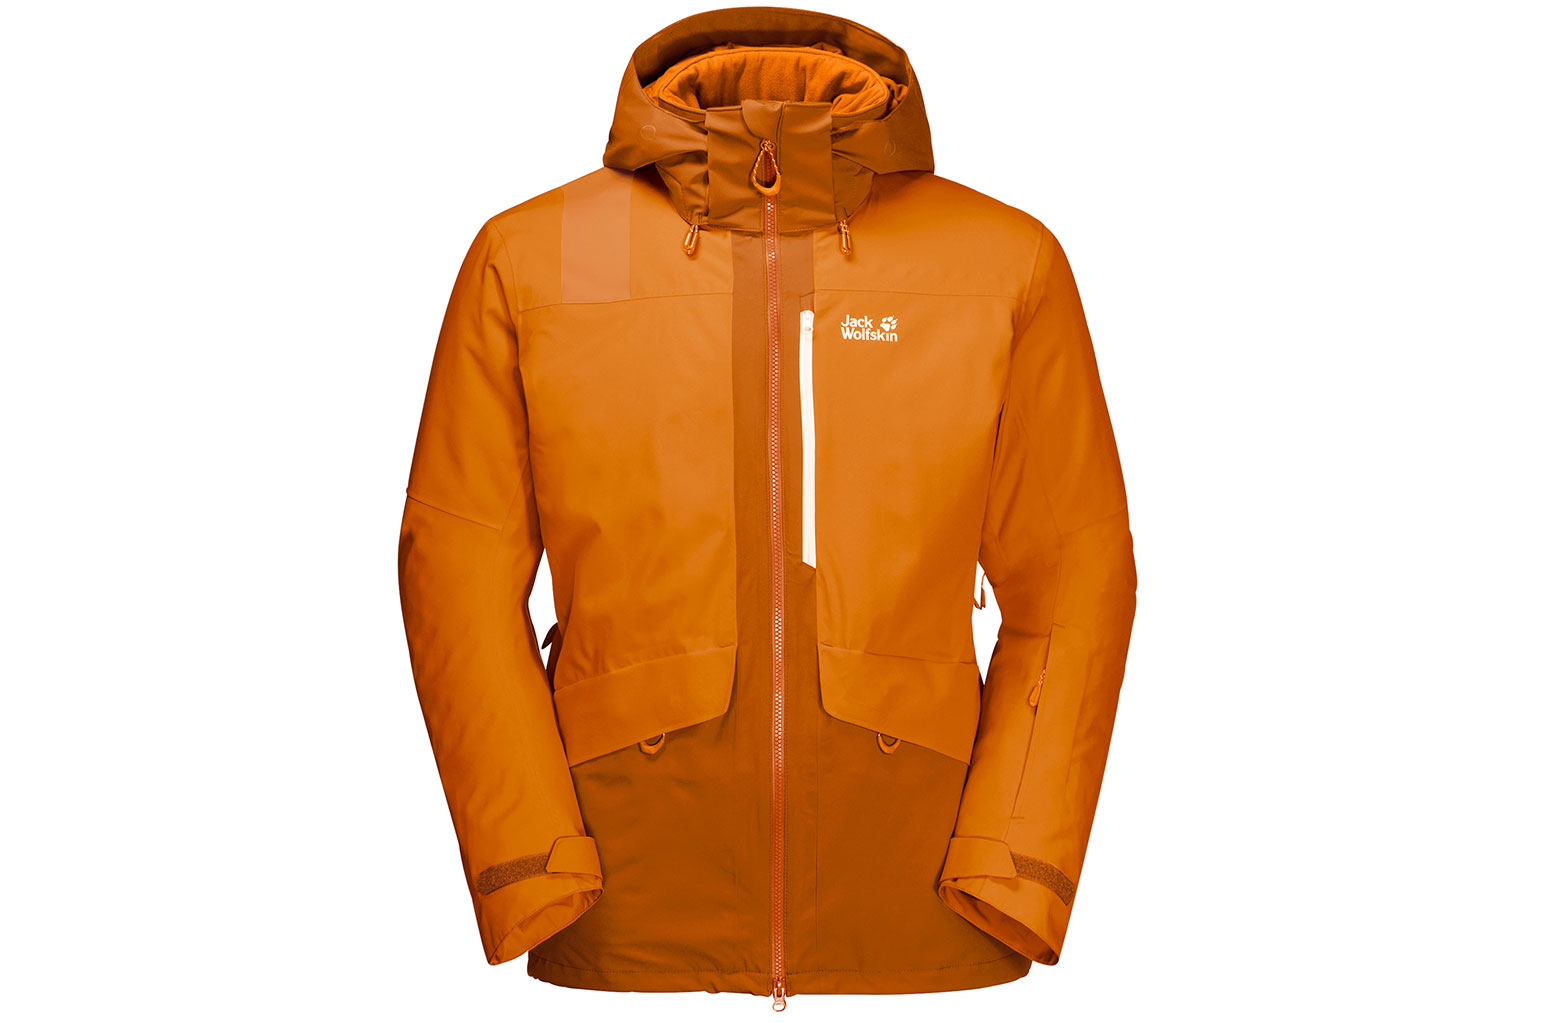 Jack Wolfskin Big White Jacket in Rusty Orange